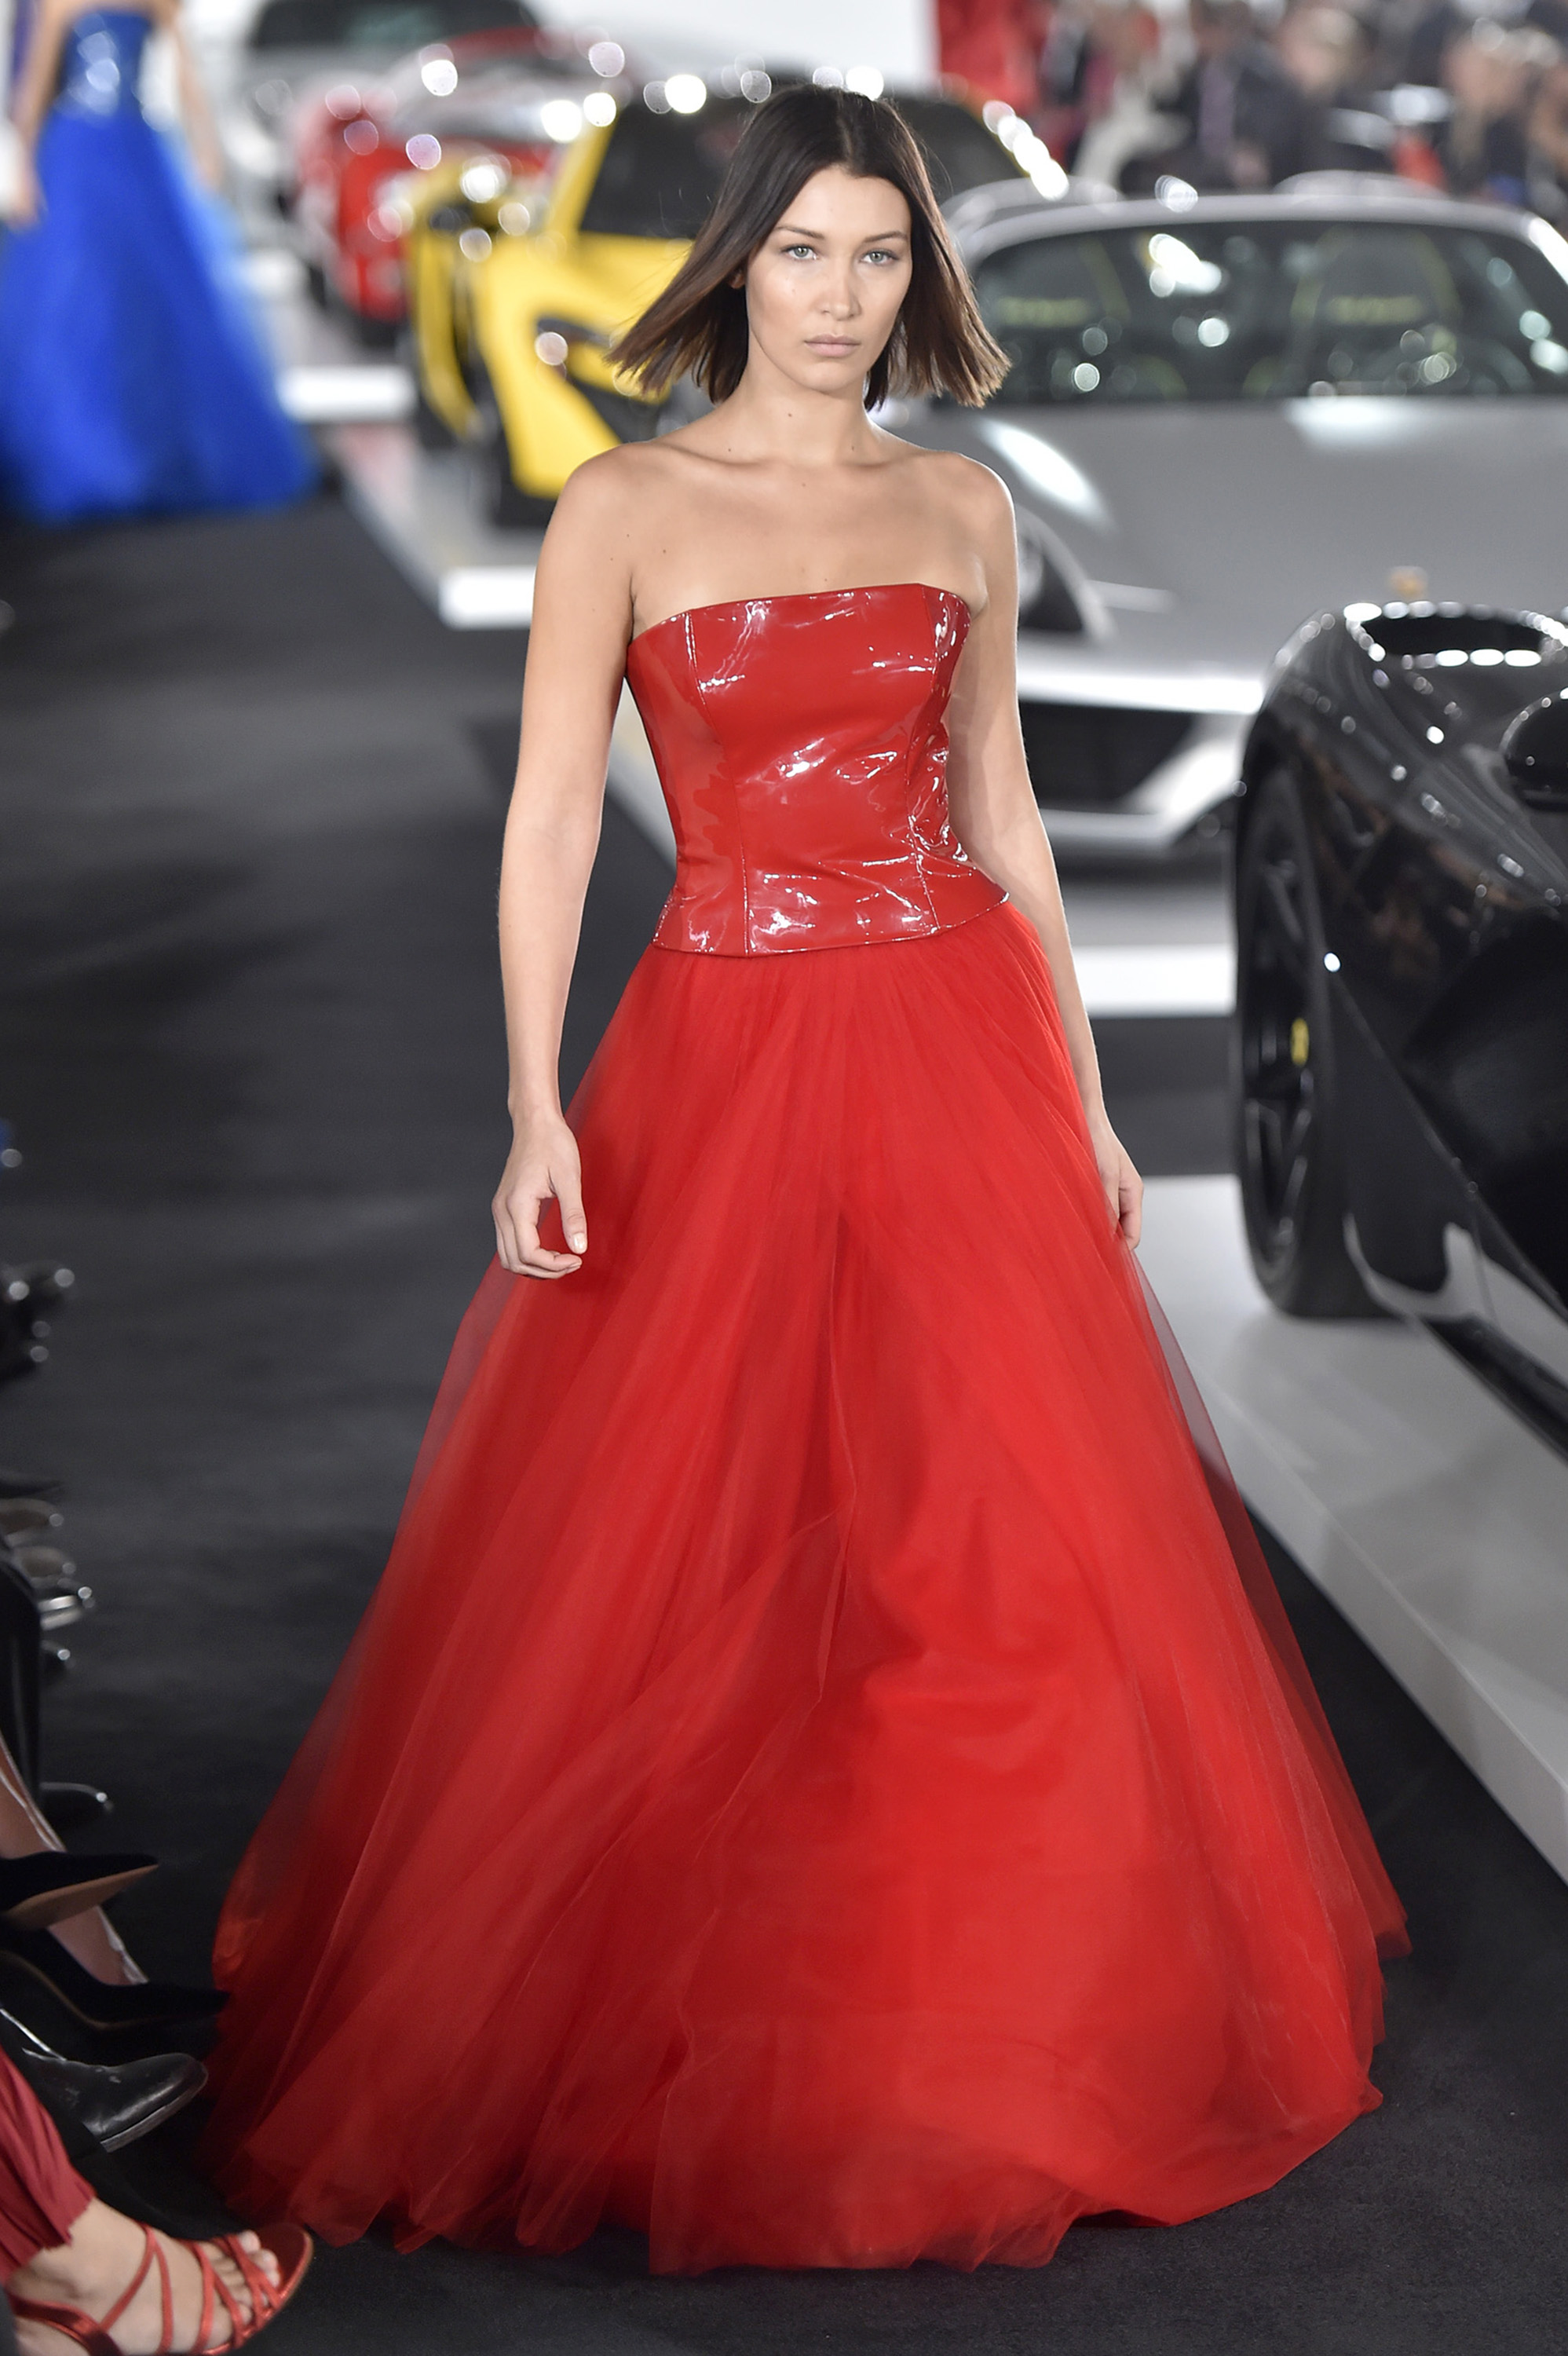 "<p><a href=""http://style.nine.com.au/bella-hadid"" target=""_blank"">Models of the moment Bella Hadid </a>and <a href=""https://style.nine.com.au/kendall-jenner"" target=""_blank"">Kendall Jenner</a> have strutted their stuff for designer Ralph Lauren's Spring/Summer 2018 show, which took place in the garage of his New York home.</p> <p>In a clever twist, the runway cut through the middle of Lauren's warehouse-sized garage where he houses his collection of rare and extremely valuable luxury cars.</p> <p>A gaggle of the hottest models in the business added to the excitement. Most notable were Kendall and Bella and <a href=""https://style.nine.com.au/anwar-hadid"" target=""_blank"">her younger brother Anwar</a>, who is quickly carving out a name for himself as a versatile and dare we say, charming model.</p> <p>Then there was Victoria's Secret angels Romee Strijd, Taylor Hill and Cindy Crawford's son Presley Gerber, all of whom helped Lauren debut his new designs while some of Hollywood's biggest names watched on.</p> <p>A-list guests included Diane Keaton, Jessica Chastain, Katie Holmes, Sistine Stallone, Poppy Delevingne and Diane von Furstenberg.</p> <p>The crowd sipped champagne in the company of the valuable vintage sports cars that included a 1955 Porsche 550 Spyder and a rare 1938 Bugatti 57SC estimated to be worth a staggering $40 million.</p> <p>The luxury cars brought the cool while the clothes brought the chic. Models walked past the automobile line-up in slim skirts, tailored jackets, plaid suits and luxurious coats.</p> <p>Bella's show-stopping red ball gown was a runway highlight.</p> <p>""Still in awe and dreaming about last night...Thank you for opening your incredible garage of the most beautiful, sexy, special vehicles I have ever had the privilege of seeing in my life @ralphlauren,""</p> <p>""And thank you to the team at RL for making my dream look that I'll probably be wearing to my wedding one day,"" <a href=""https://www.instagram.com/p/BY_ZLtqHQPt/?taken-by=bellahadid"" target=""_blank"">Hadid wrote on Instagram.</a><br> Click through to see the highlights from Ralph Lauren's star-studded S/S'18 show.</p>"